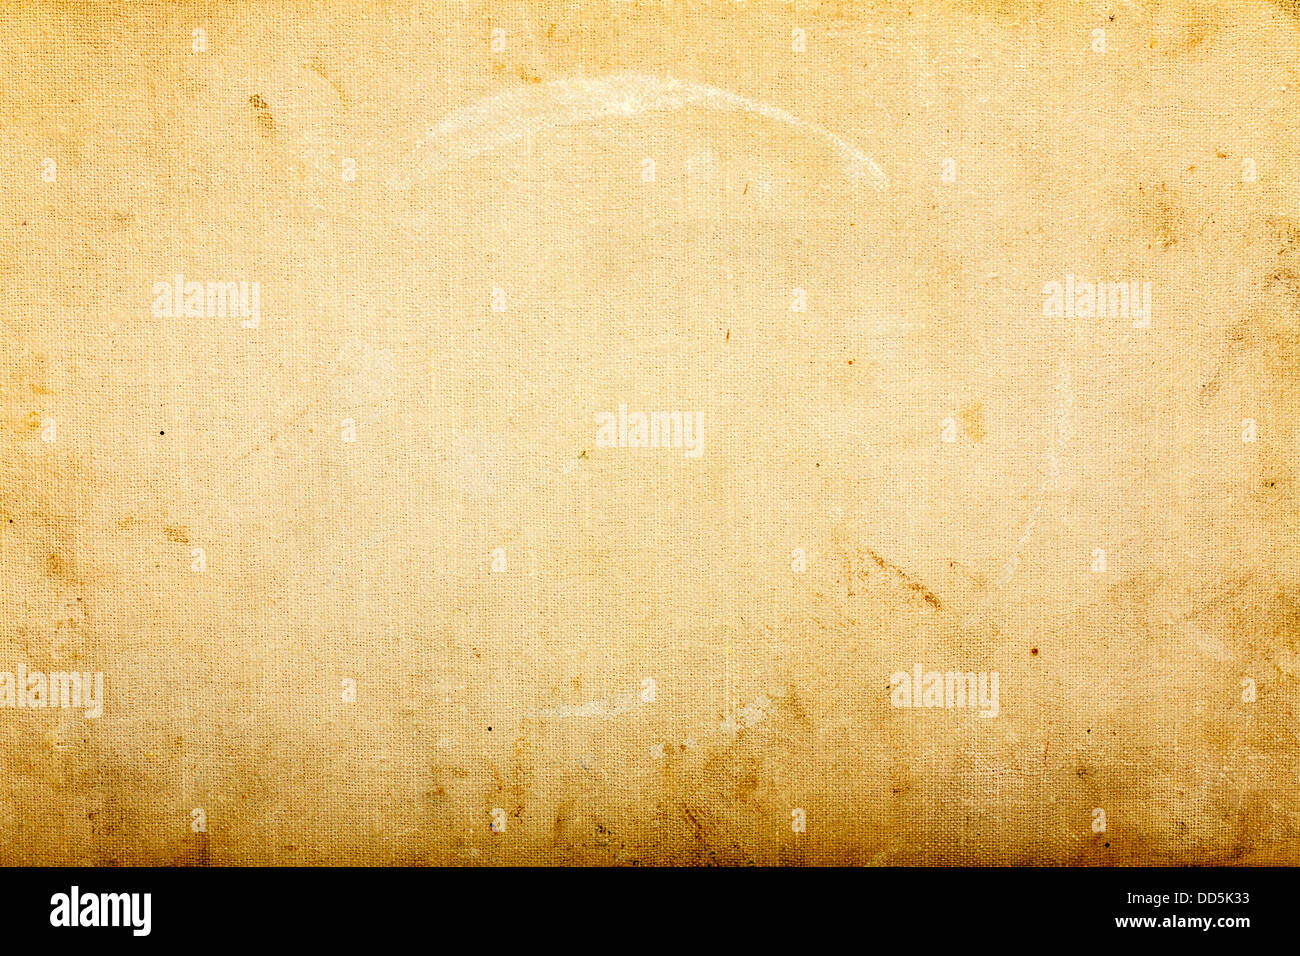 Old Brown Paper Texture, Background For Artwork - Stock Image